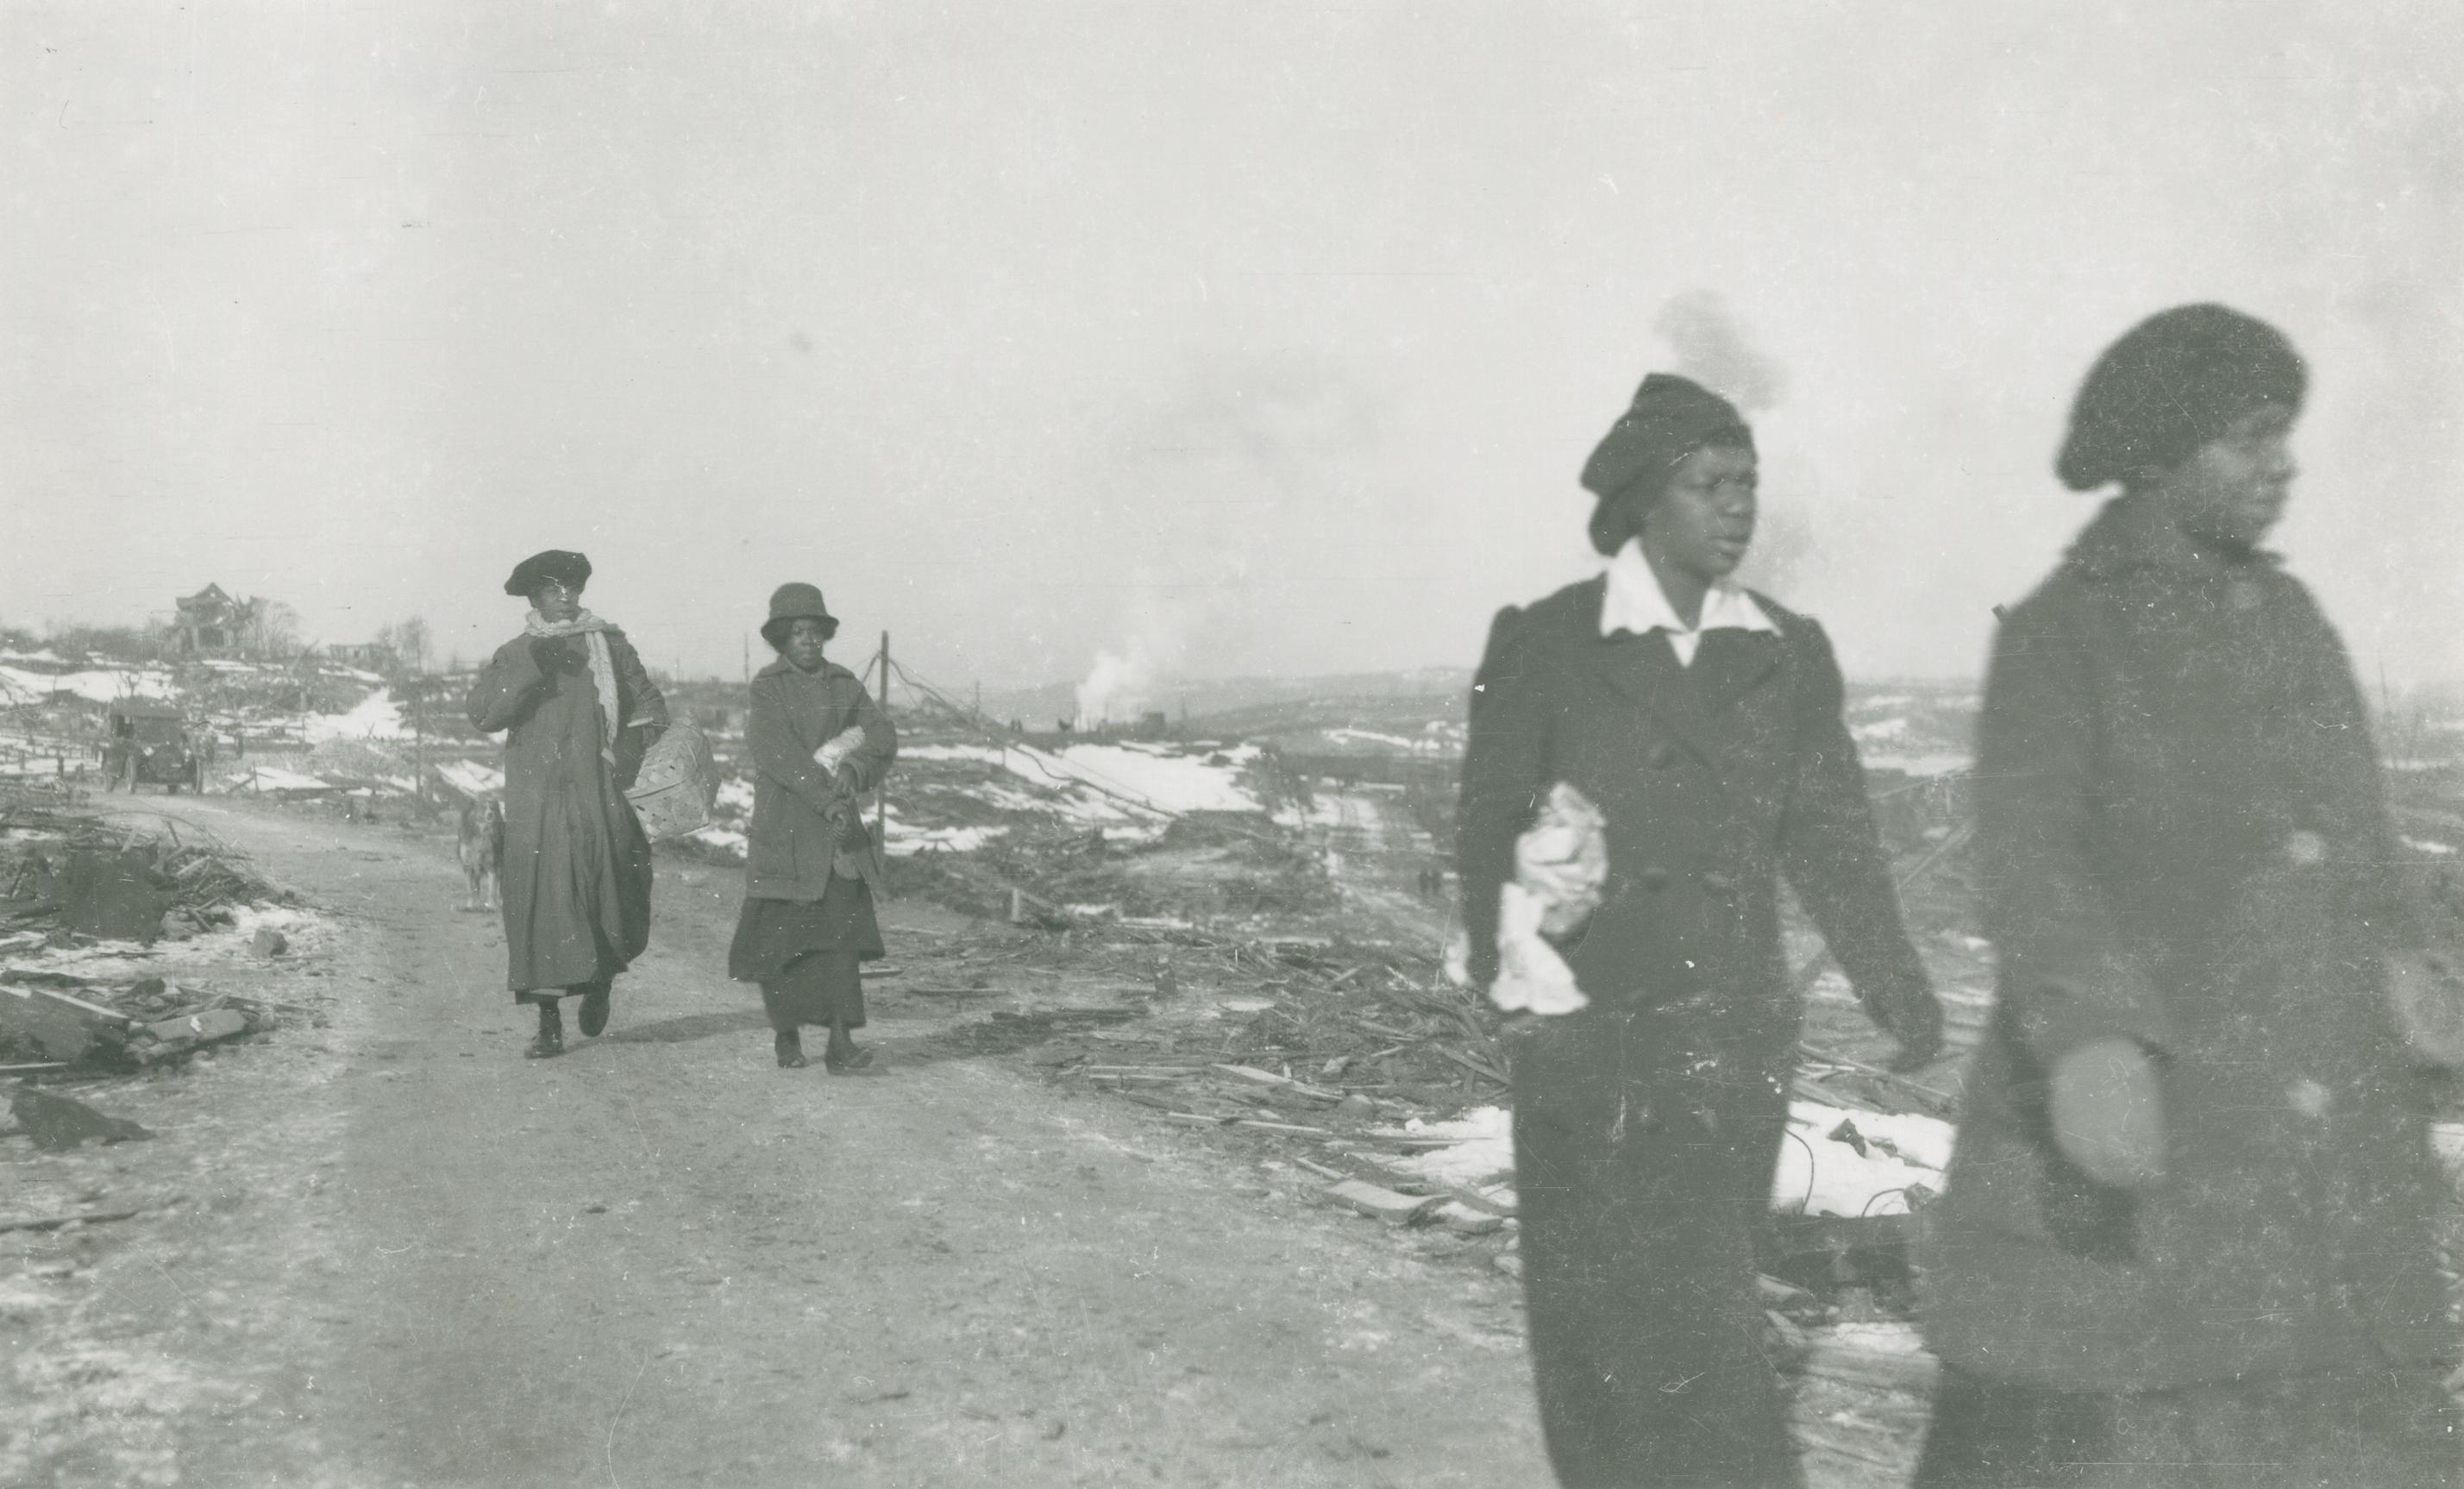 Four Black women in overcoats walk down a dirt road that runs through barren land.